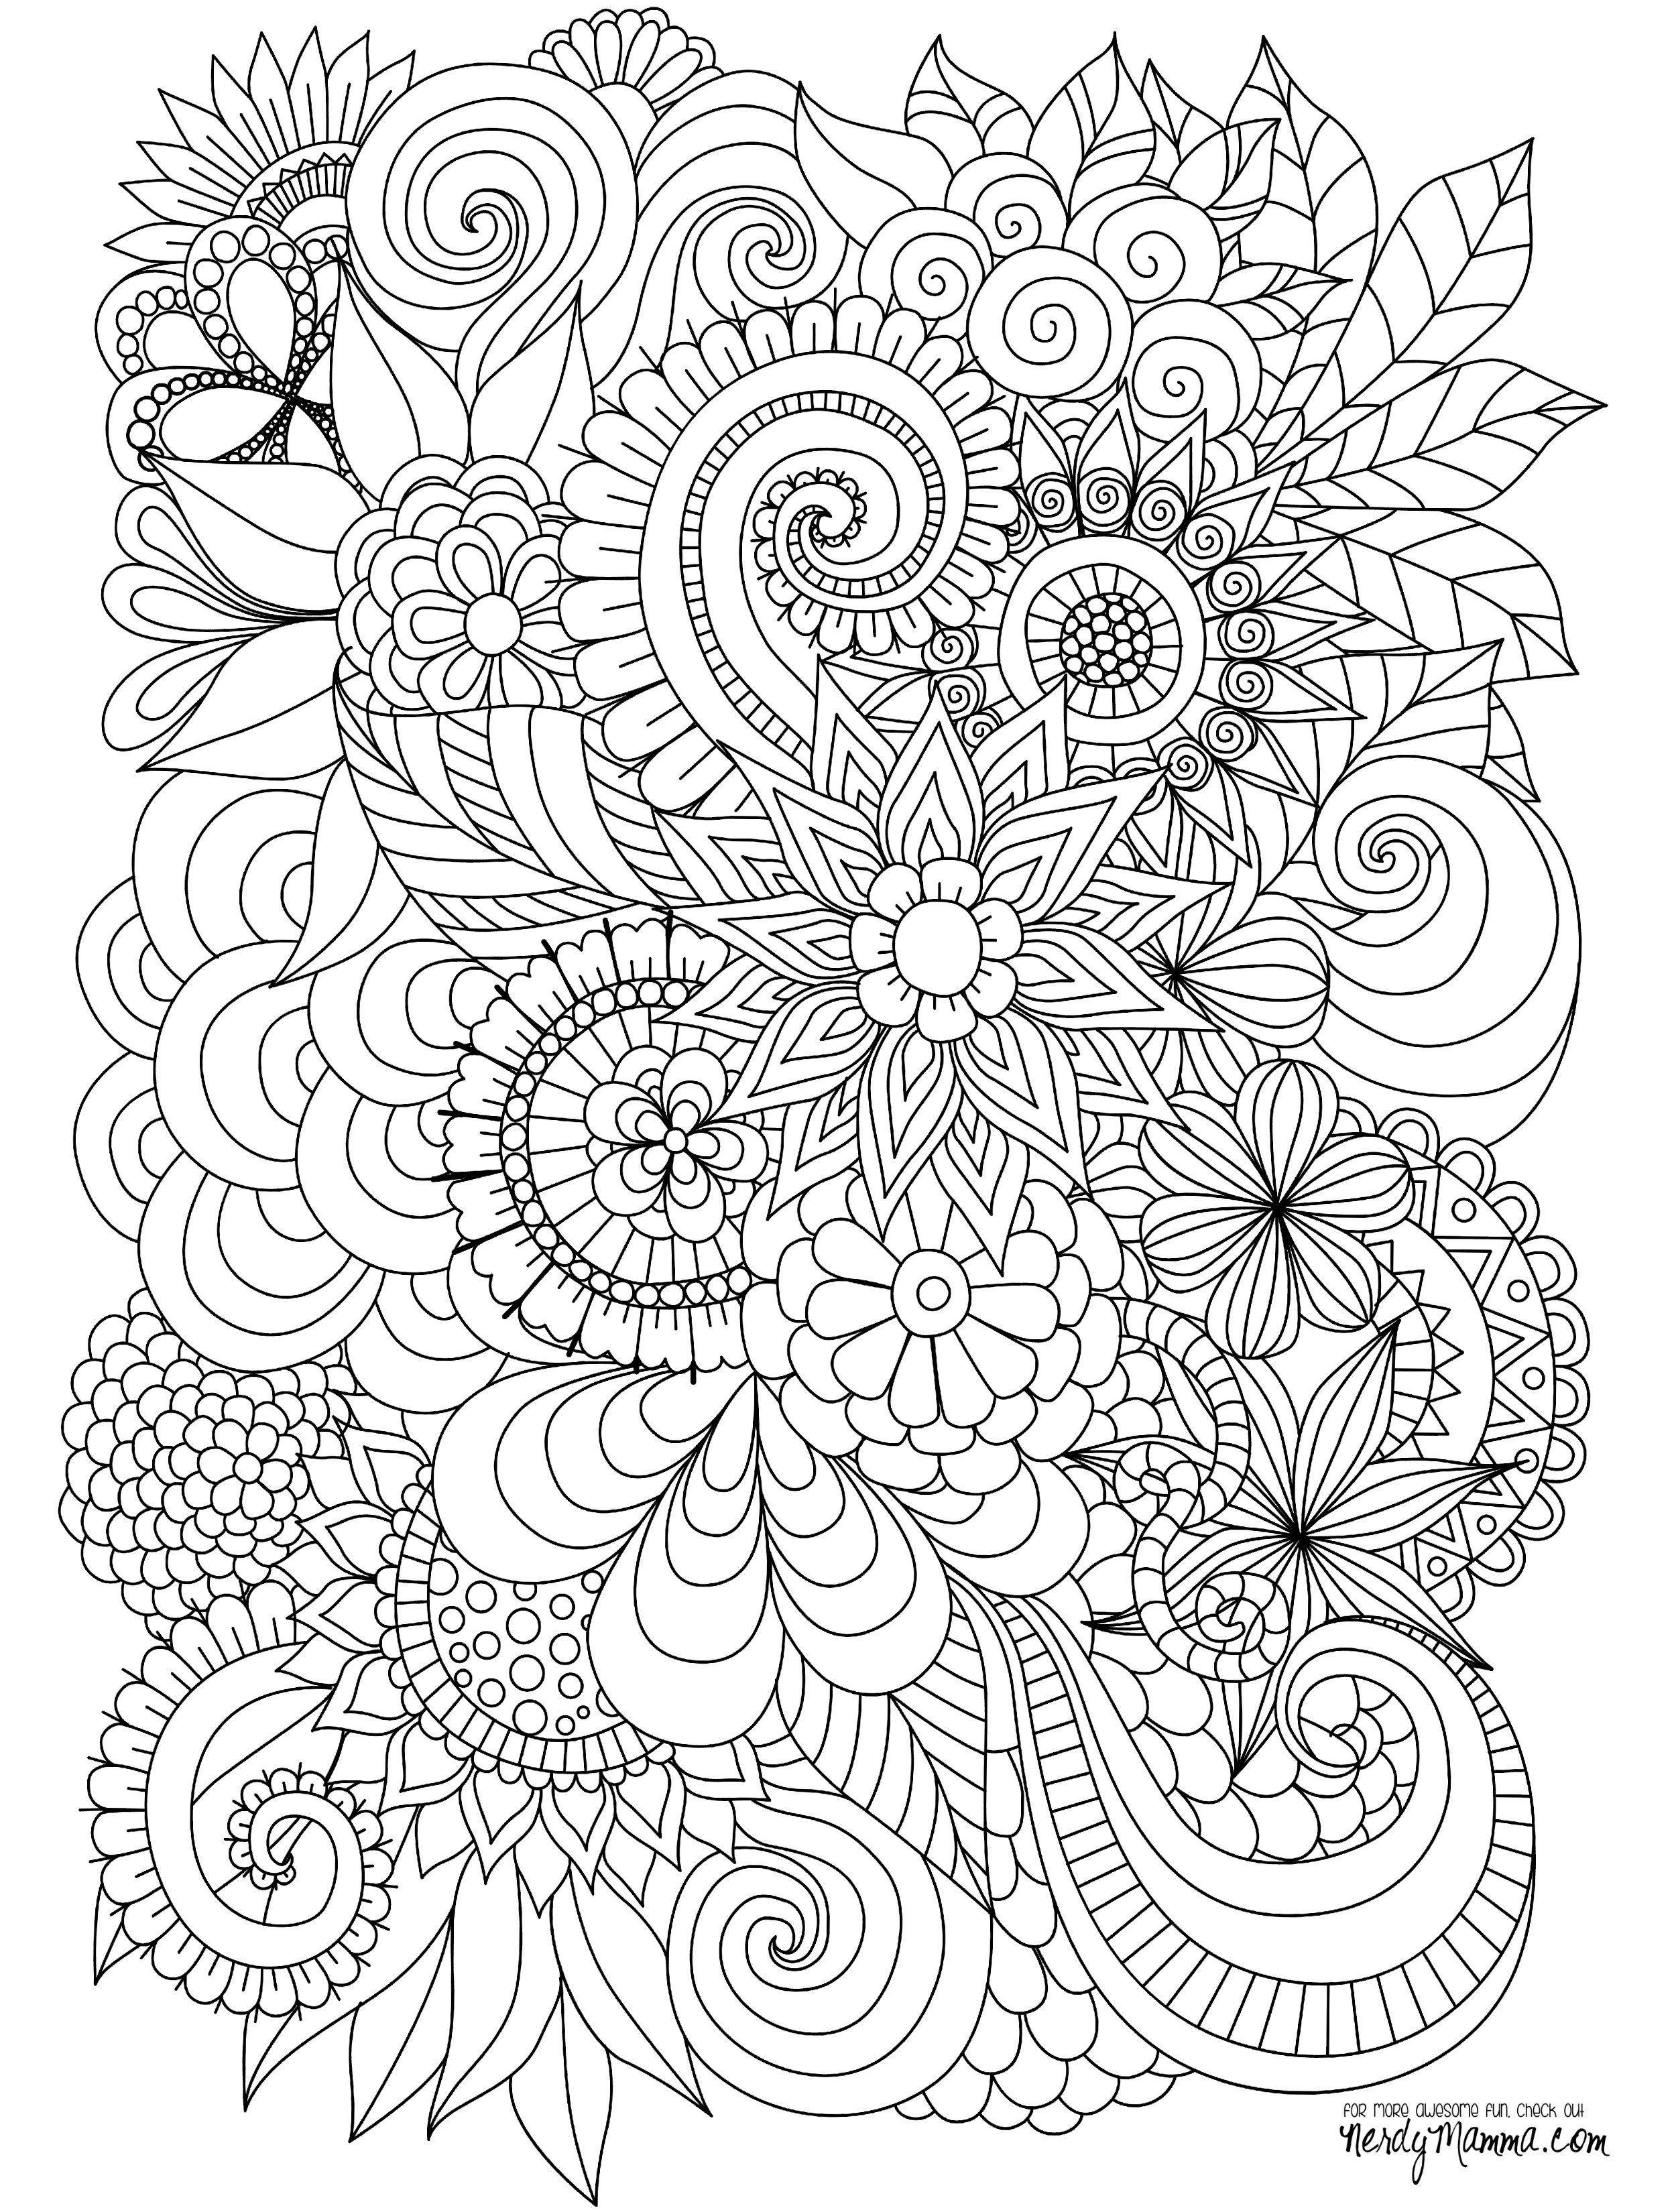 free coloring pages to color online Download-Flowers Abstract Coloring pages colouring adult detailed advanced printable Kleuren voor volwassenen coloriage pour adulte anti stress kleurplaat voor 14-a